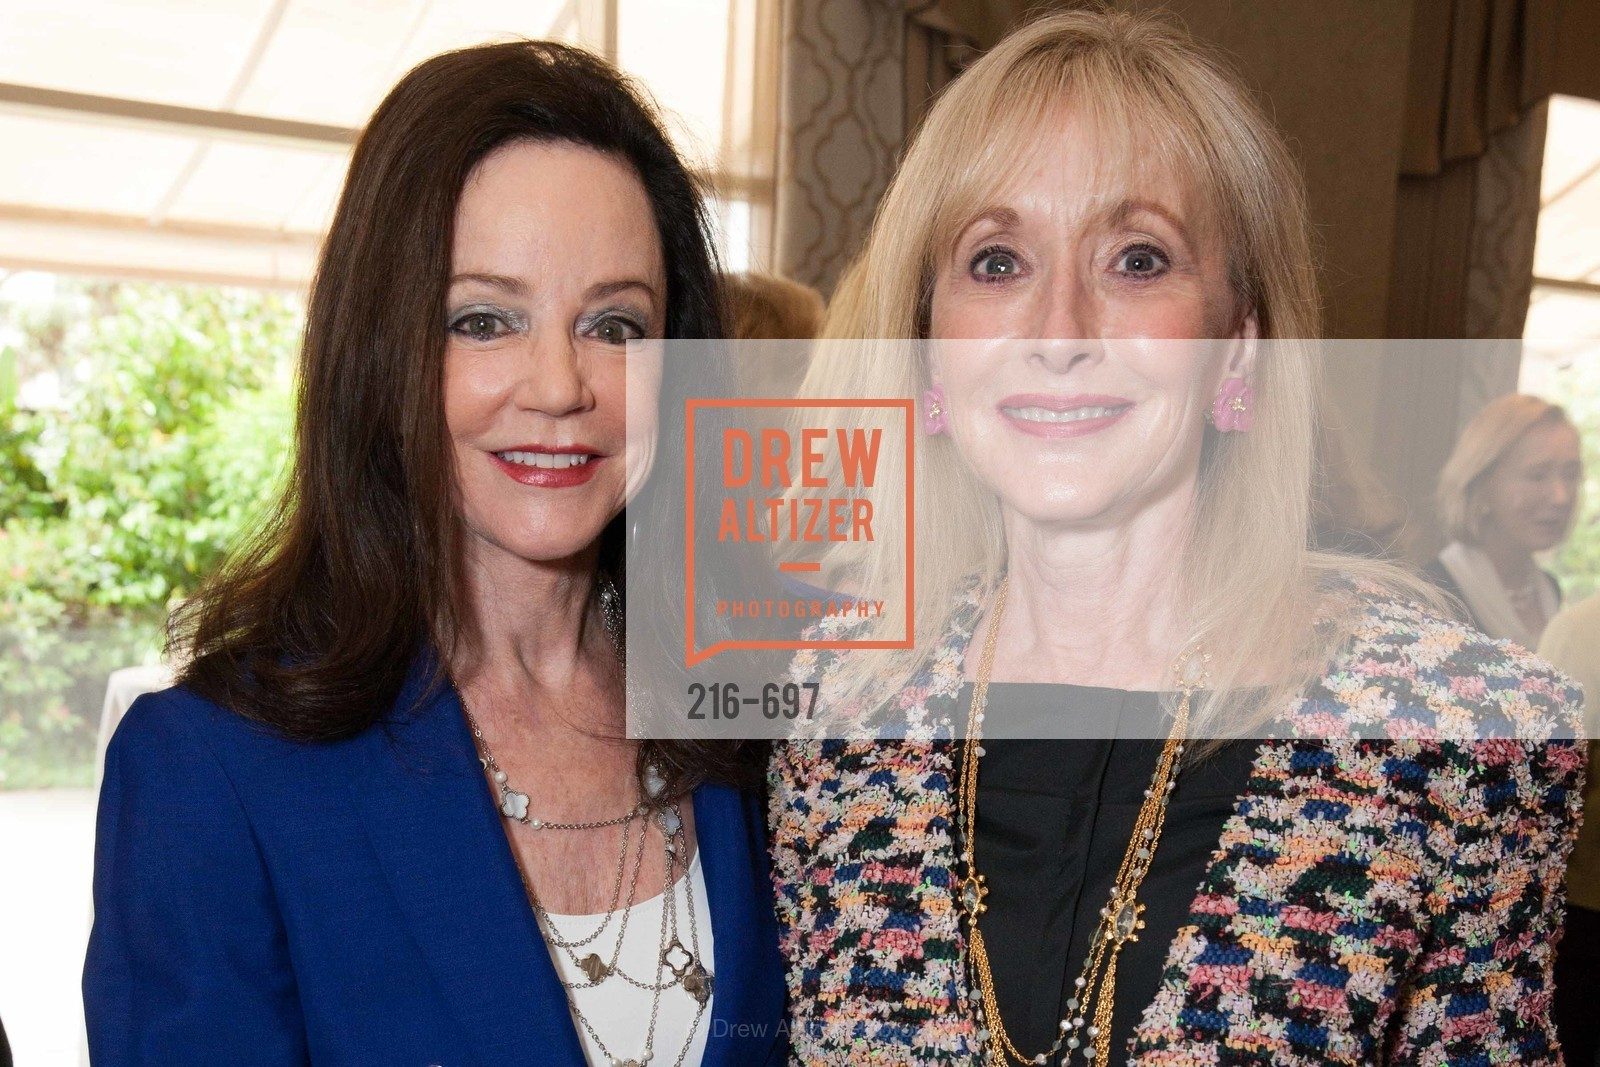 Gail DeMartini, Merrill Kasper, JUNIOR LEAGUE OF SAN FRANCISCO's WATCH Luncheon, US, May 4th, 2015,Drew Altizer, Drew Altizer Photography, full-service agency, private events, San Francisco photographer, photographer california